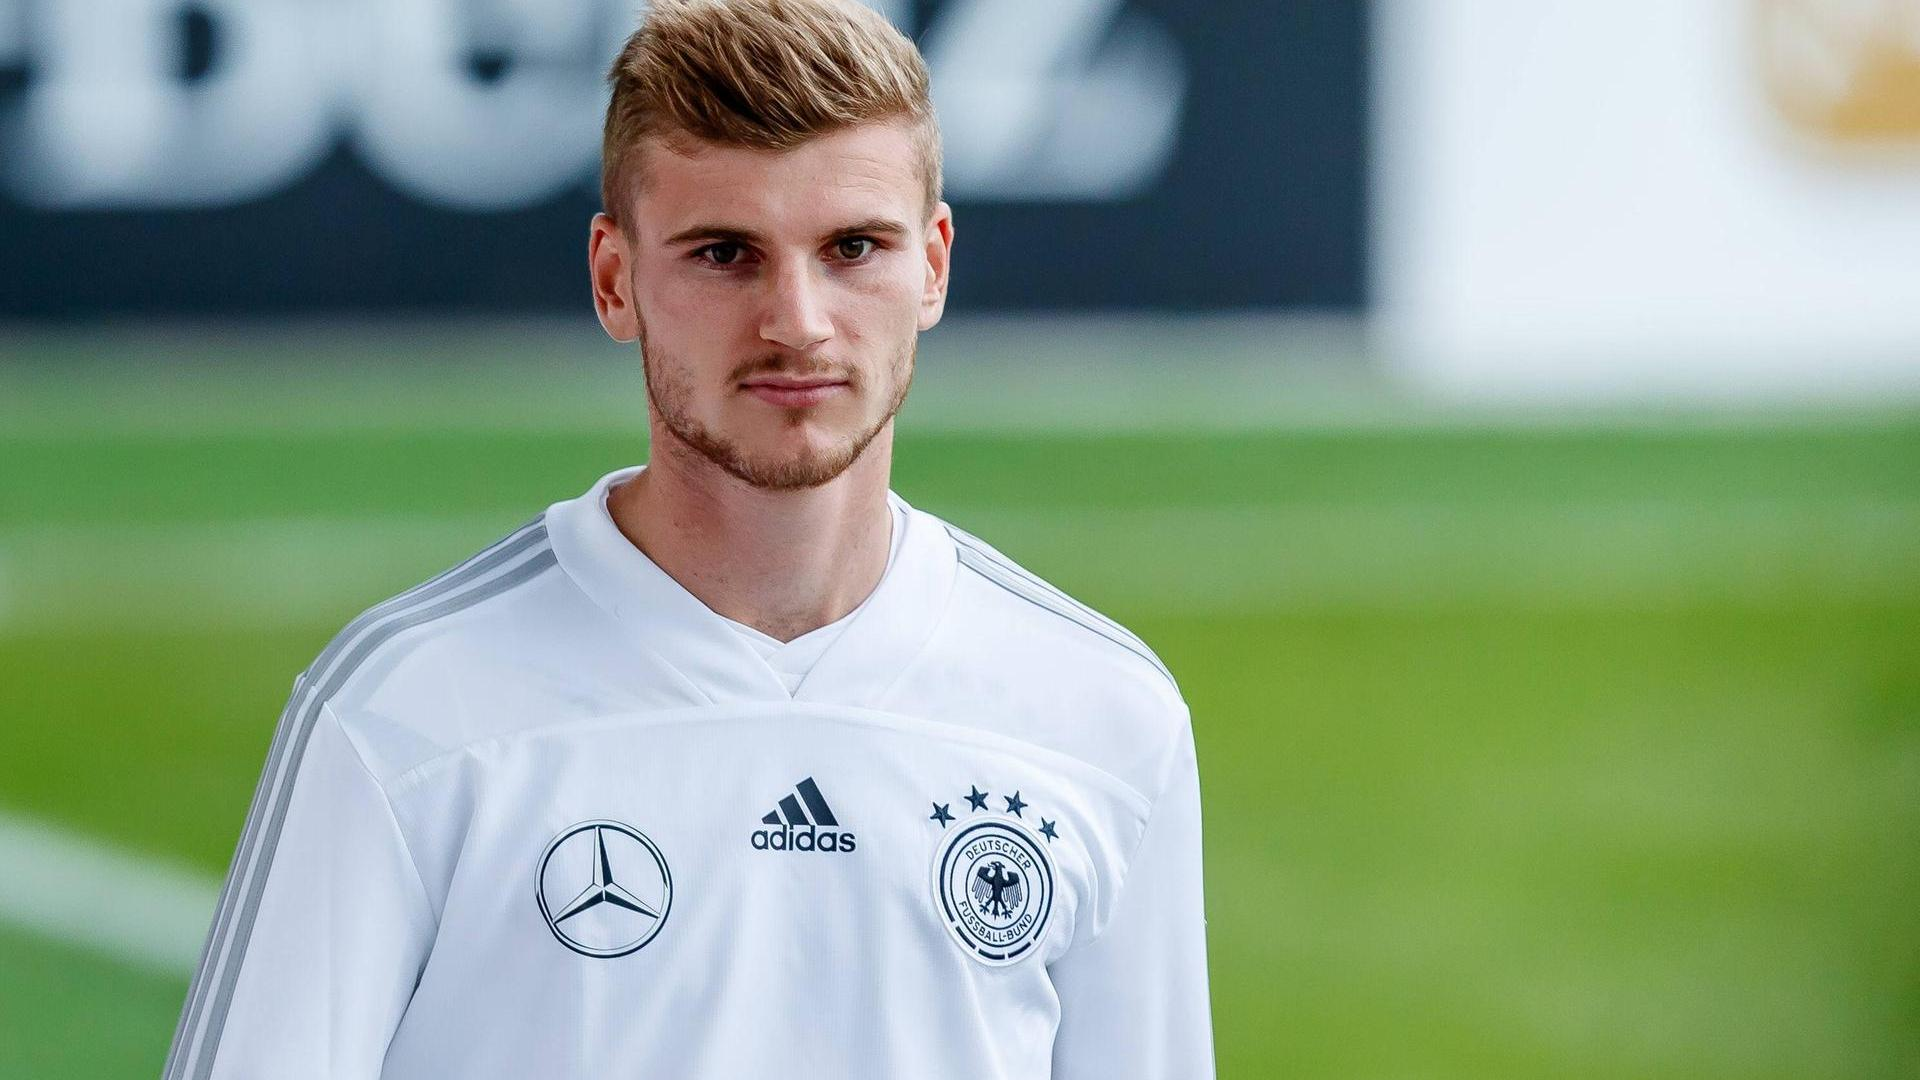 nationalspieler timo werner wir haben dinge etwas schleifen lassen. Black Bedroom Furniture Sets. Home Design Ideas